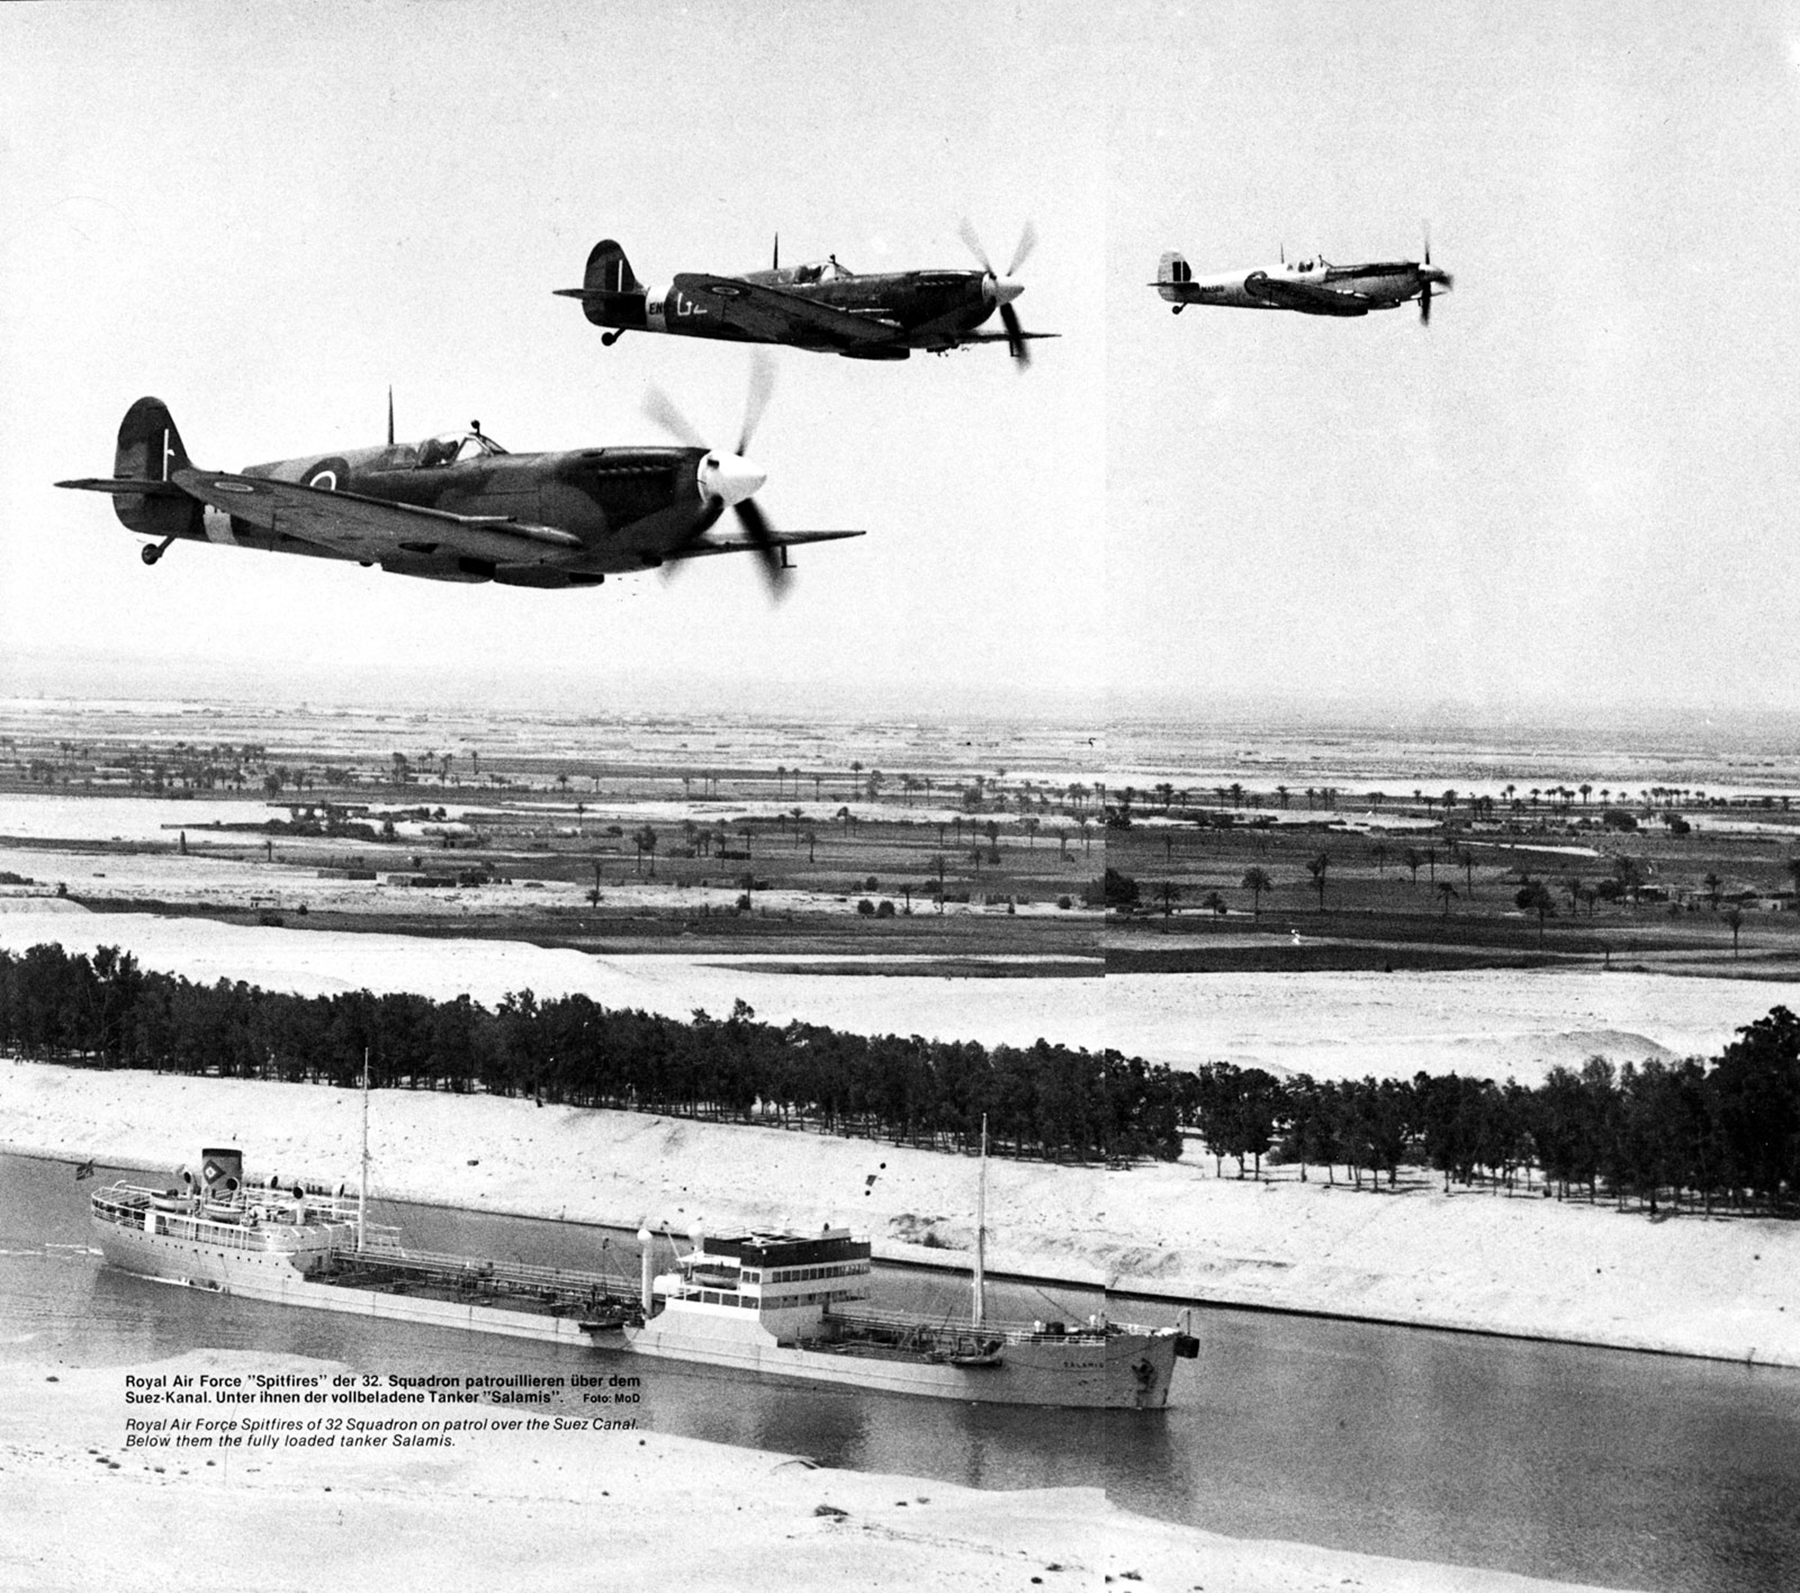 Spitfire MkIX RAF 32Sqn over the Suez Canal and Merchant Tanker Salamis 1946 01